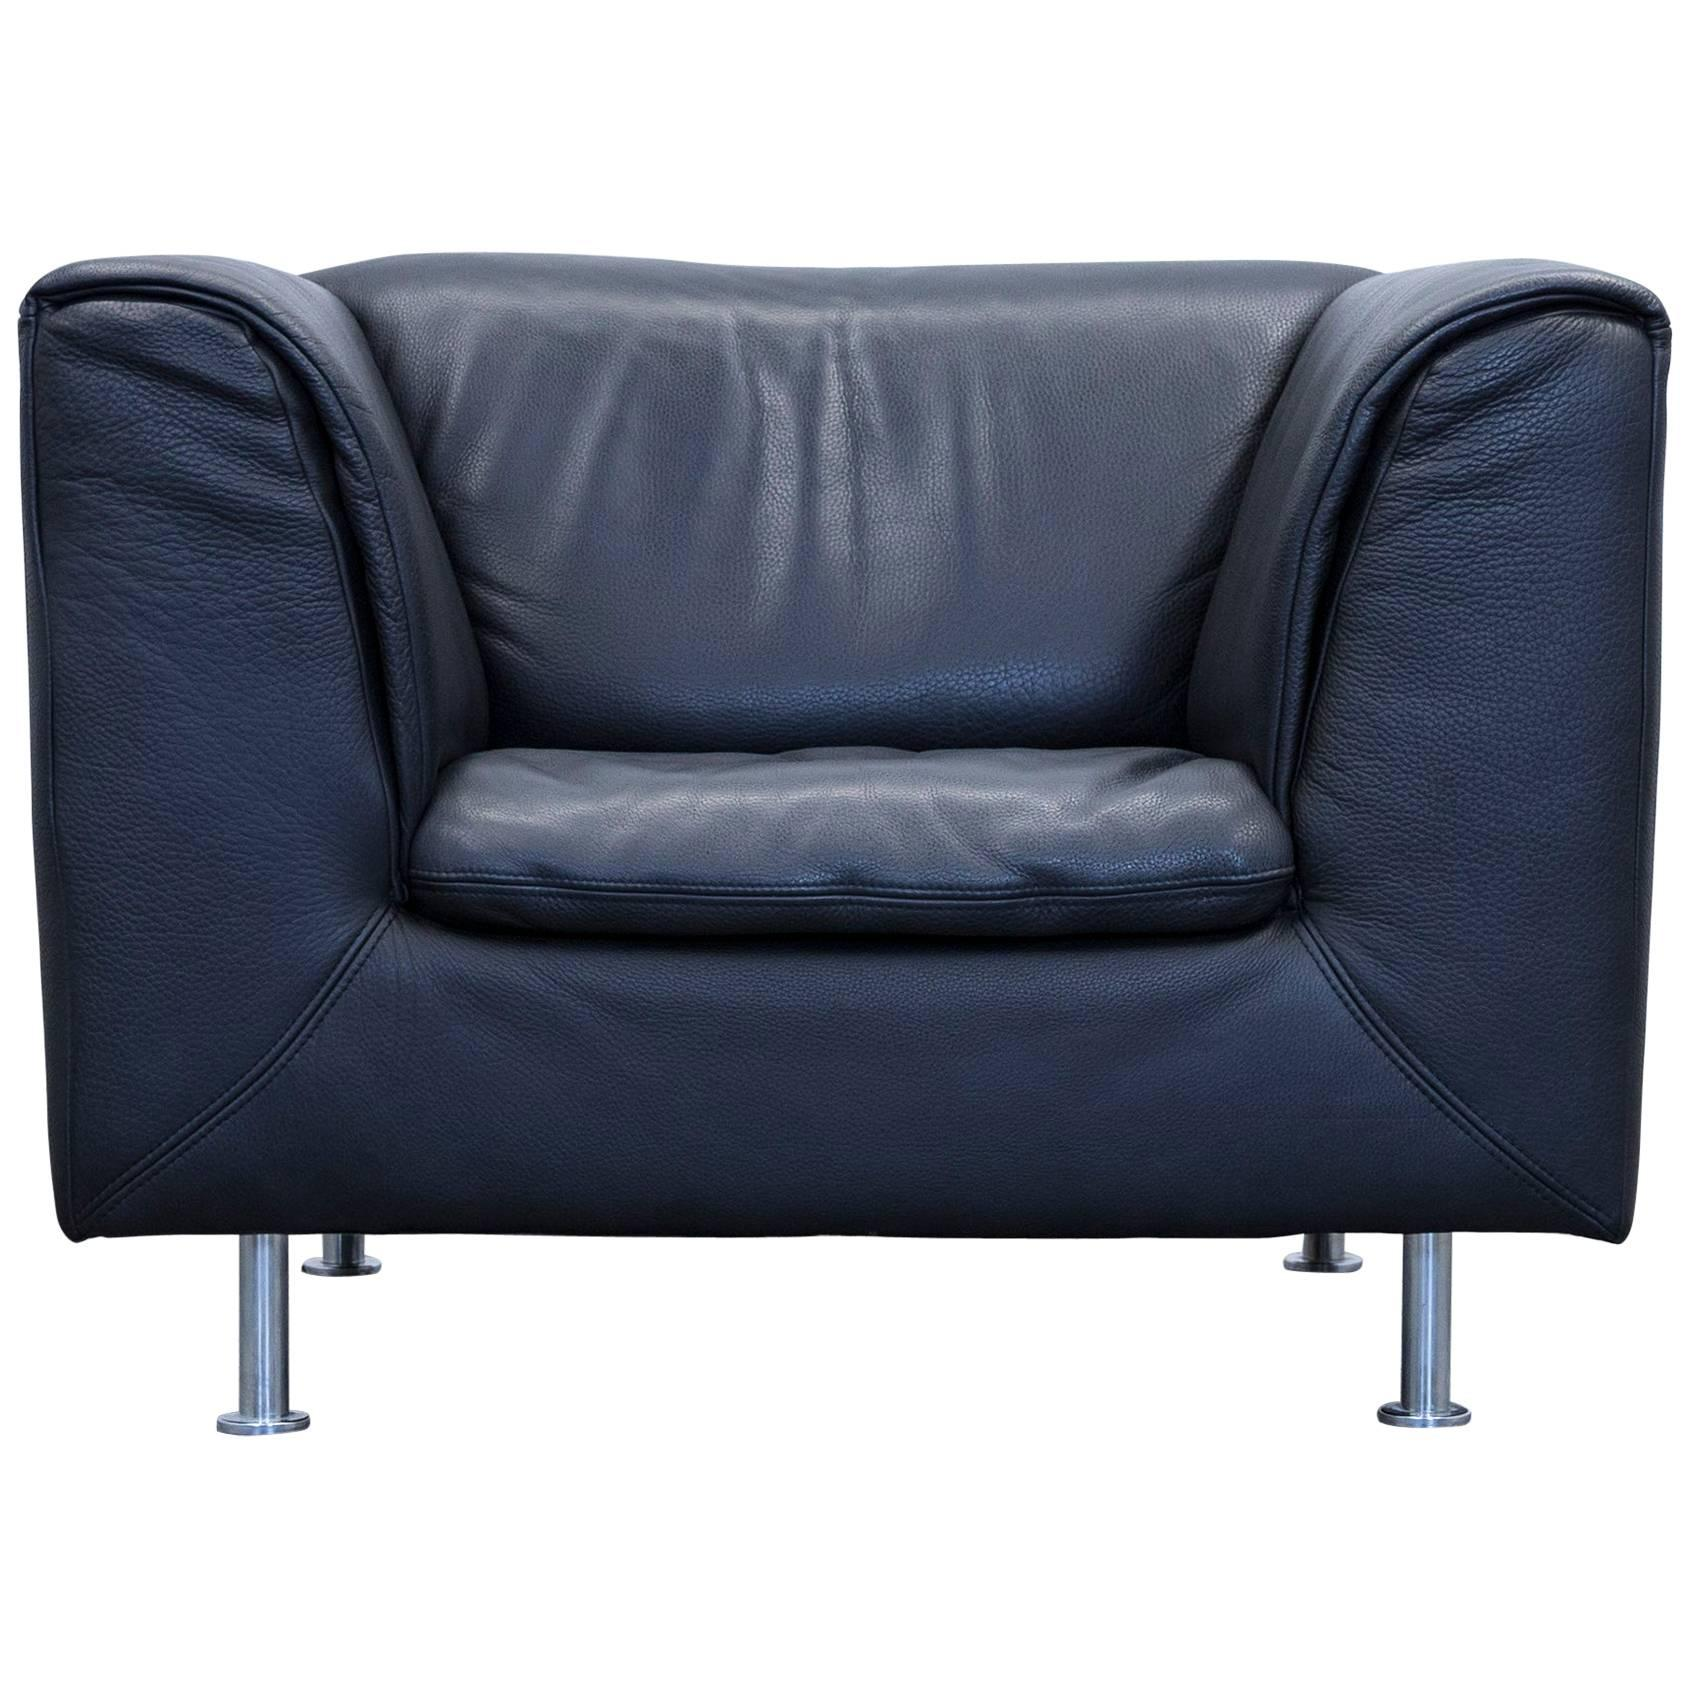 Charming Willi Schillig Designer Armchair Leather Anthrazit Black One Seat Couch Good Looking